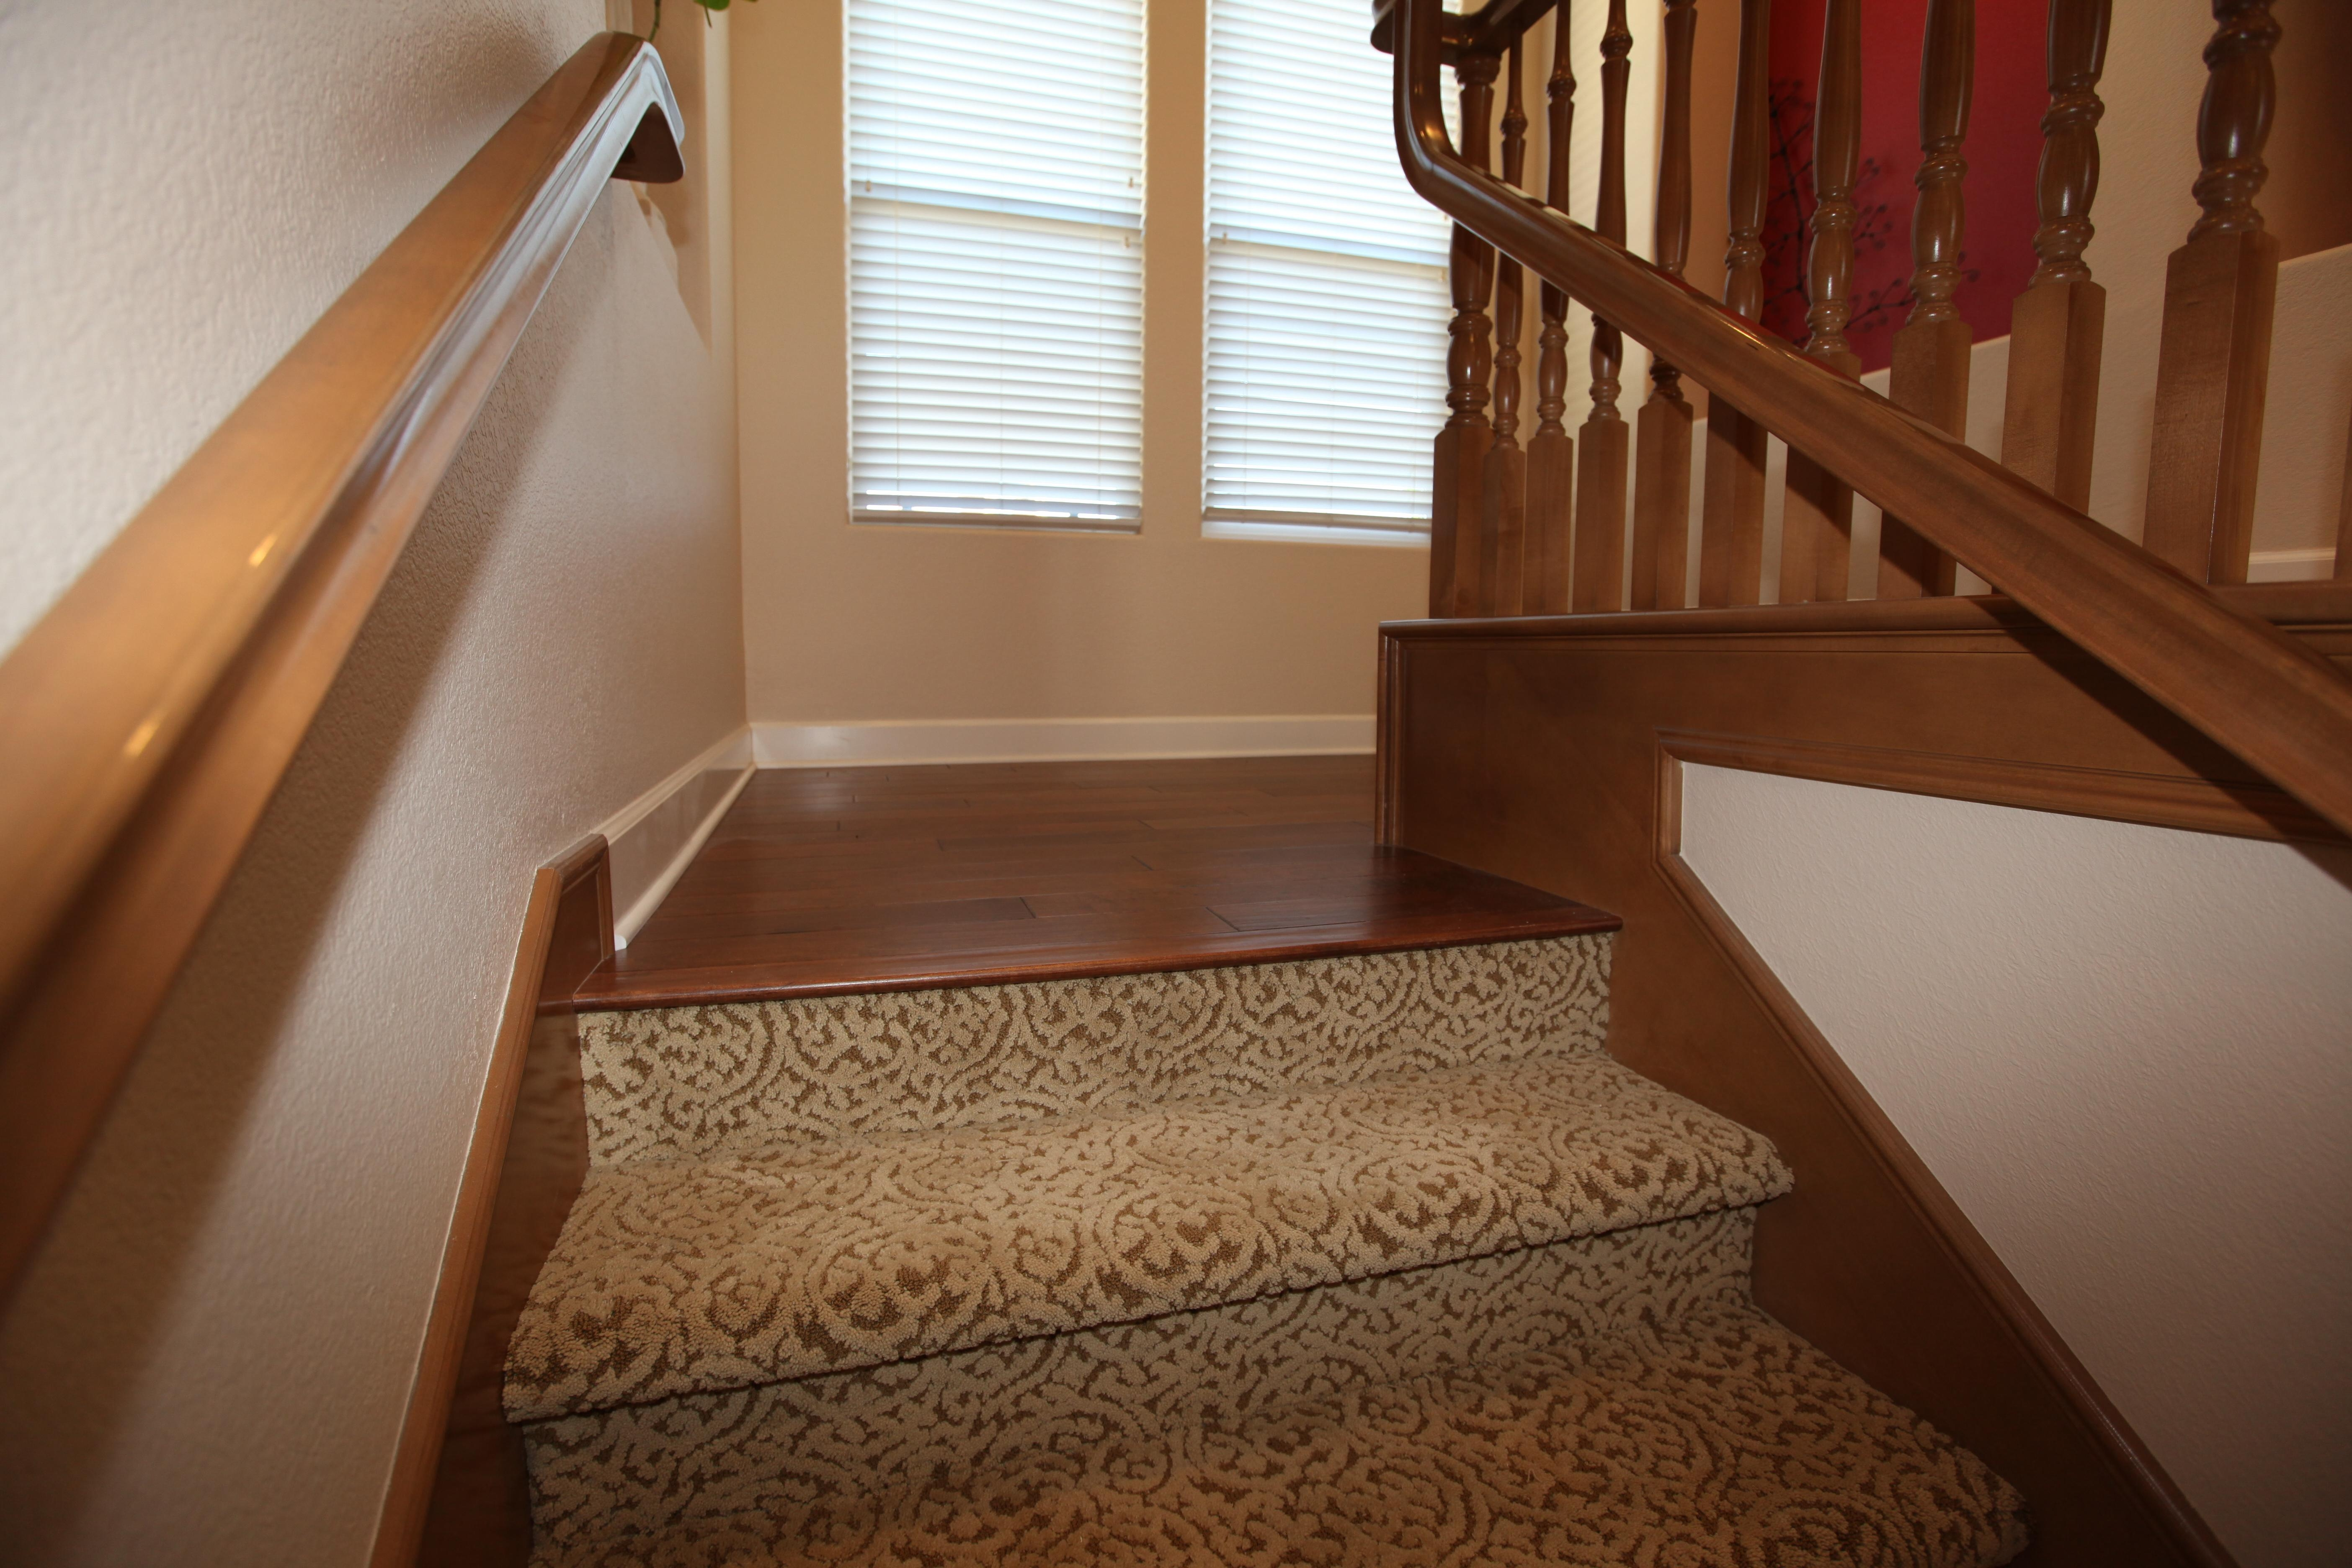 Wood Floor To Carpet Stairs Transition